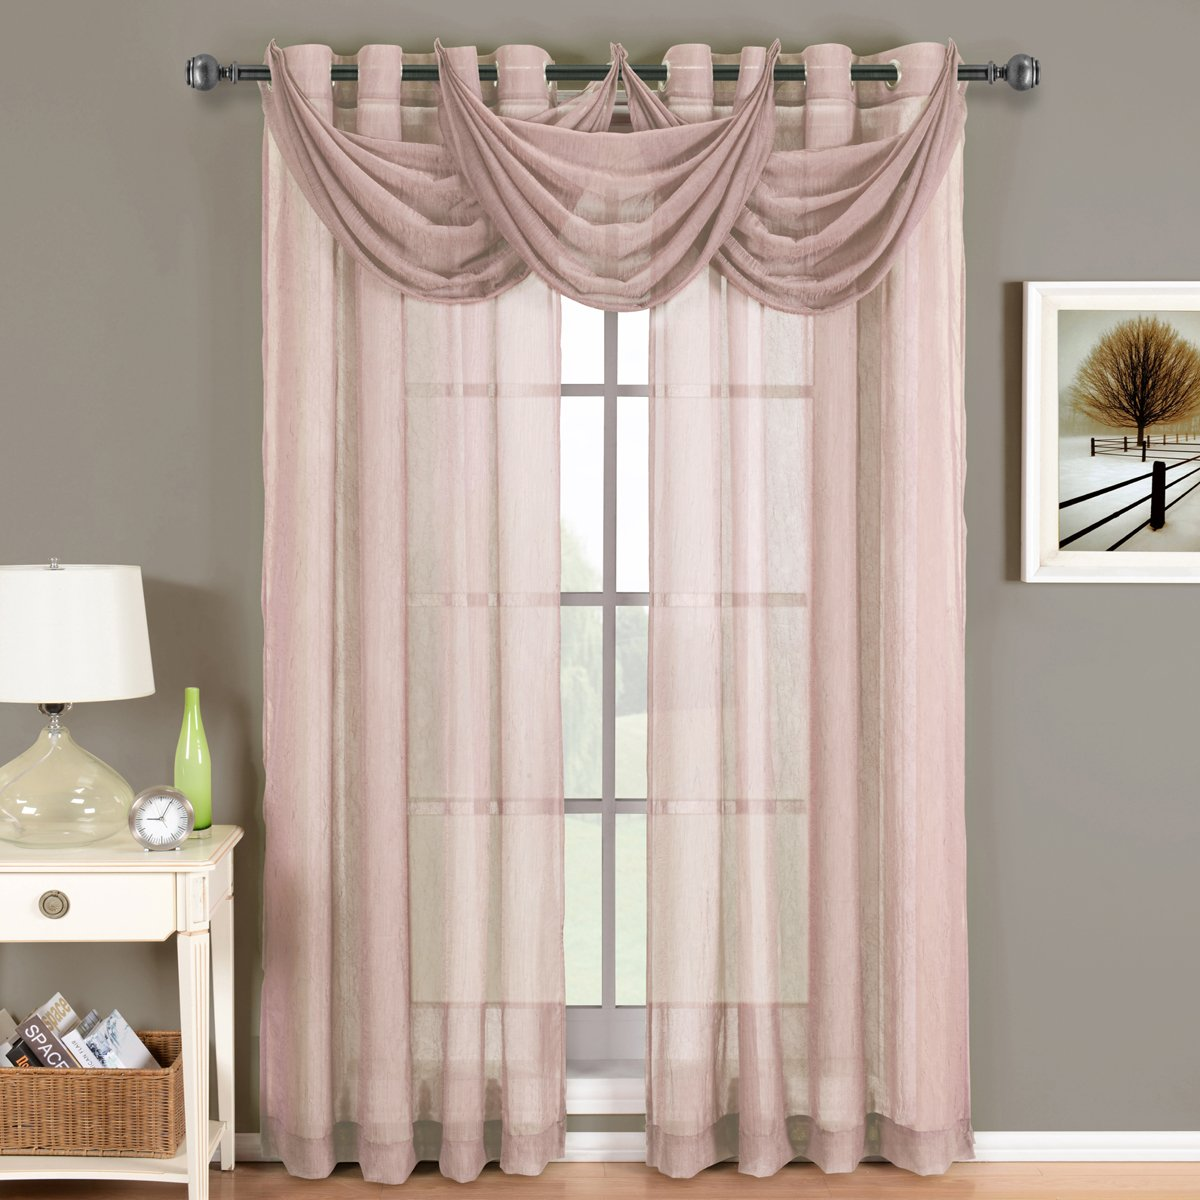 curtains nursery panels and gold blush pink walmart of for dusty curtain full rose size bedroom white